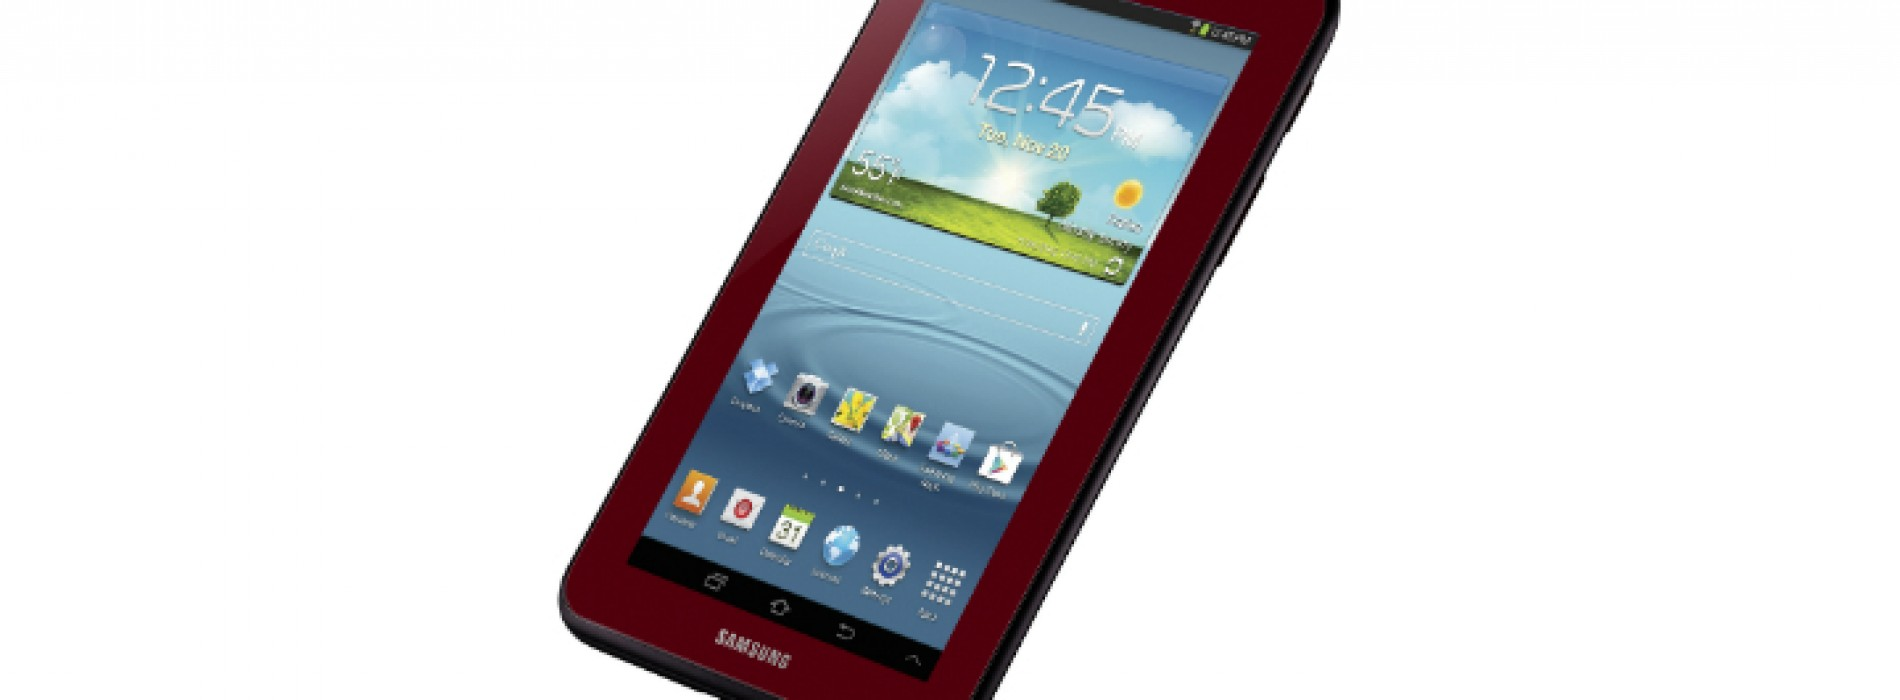 Samsung now offering special edition Garnet Red Galaxy Tab 2